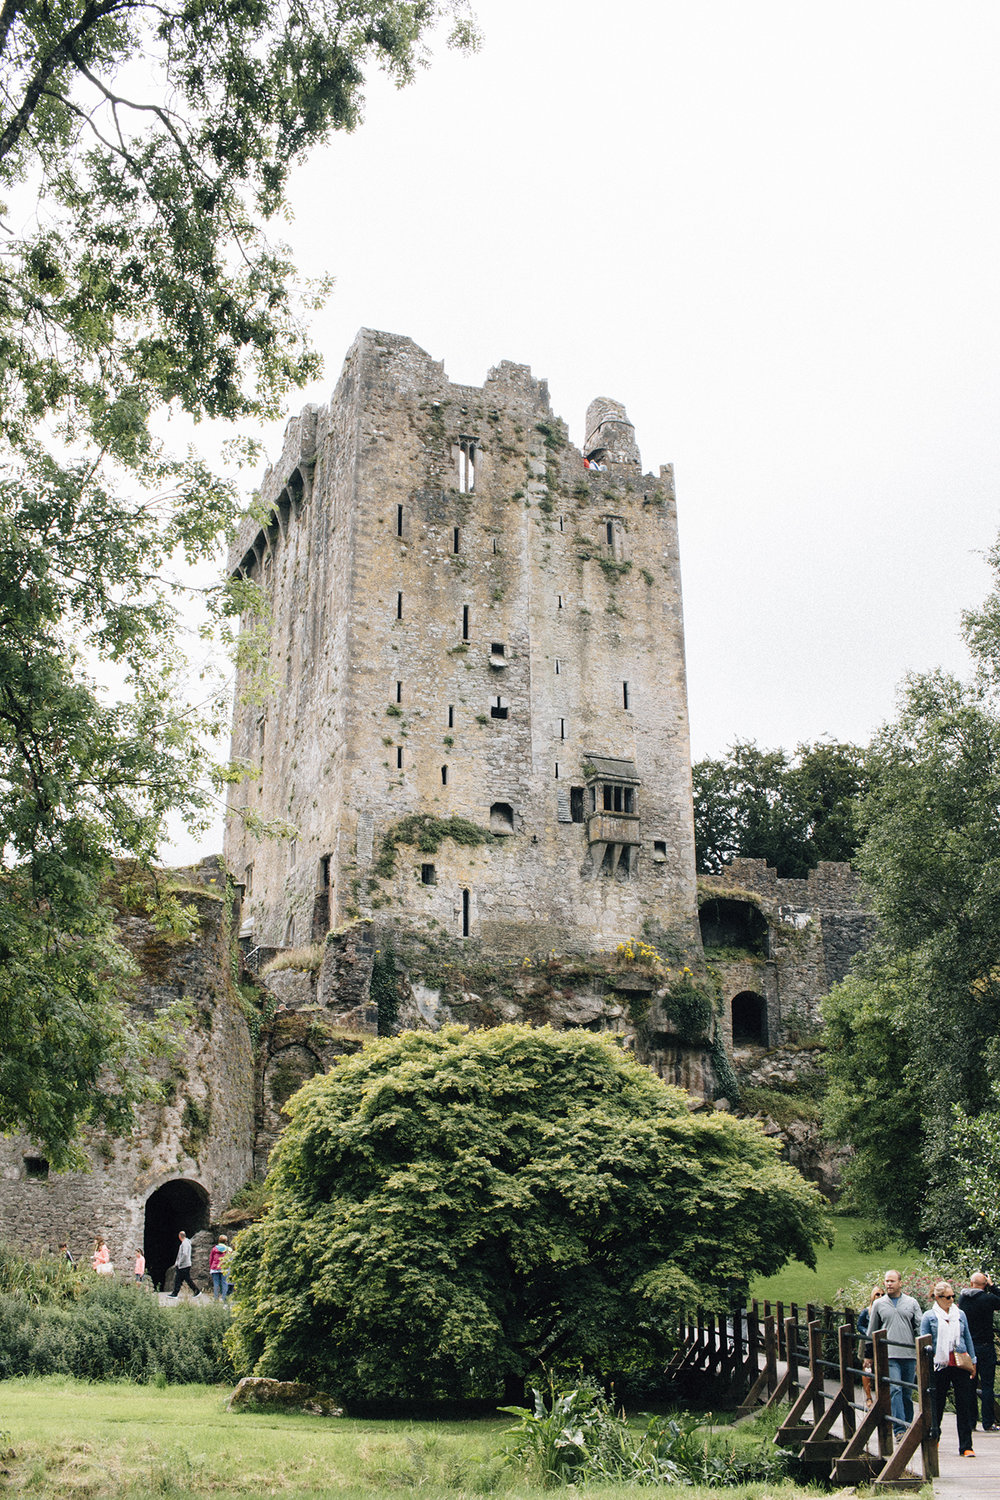 Blarney Castle & House - Walking through the grounds of Blarney Castle, and subsequently, Blarney House, it's easy to lose yourself in the grander of hidden pathways and ancient architecture.